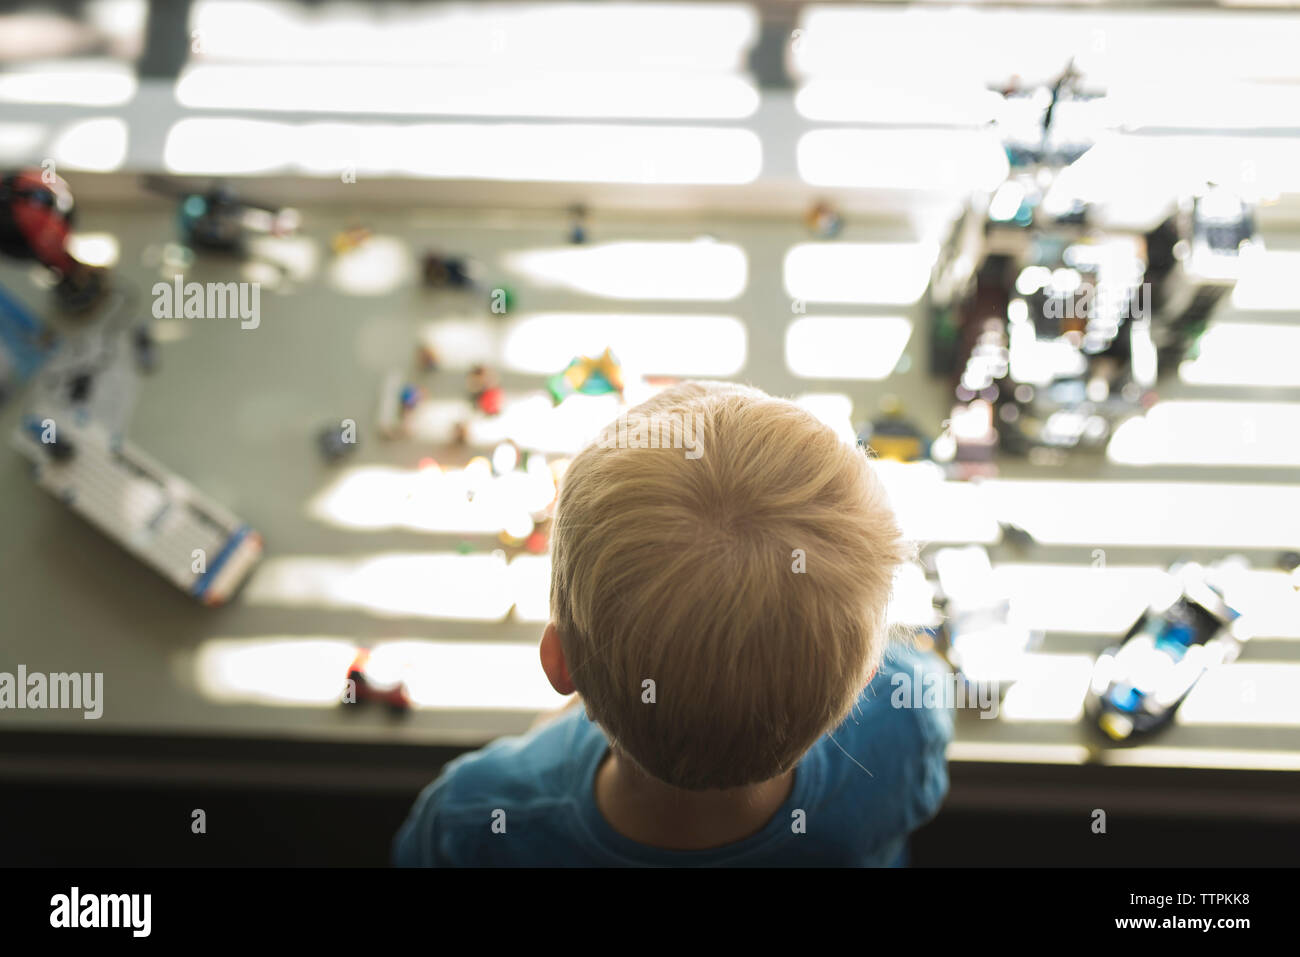 High angle view of boy at home with toys in background - Stock Photo